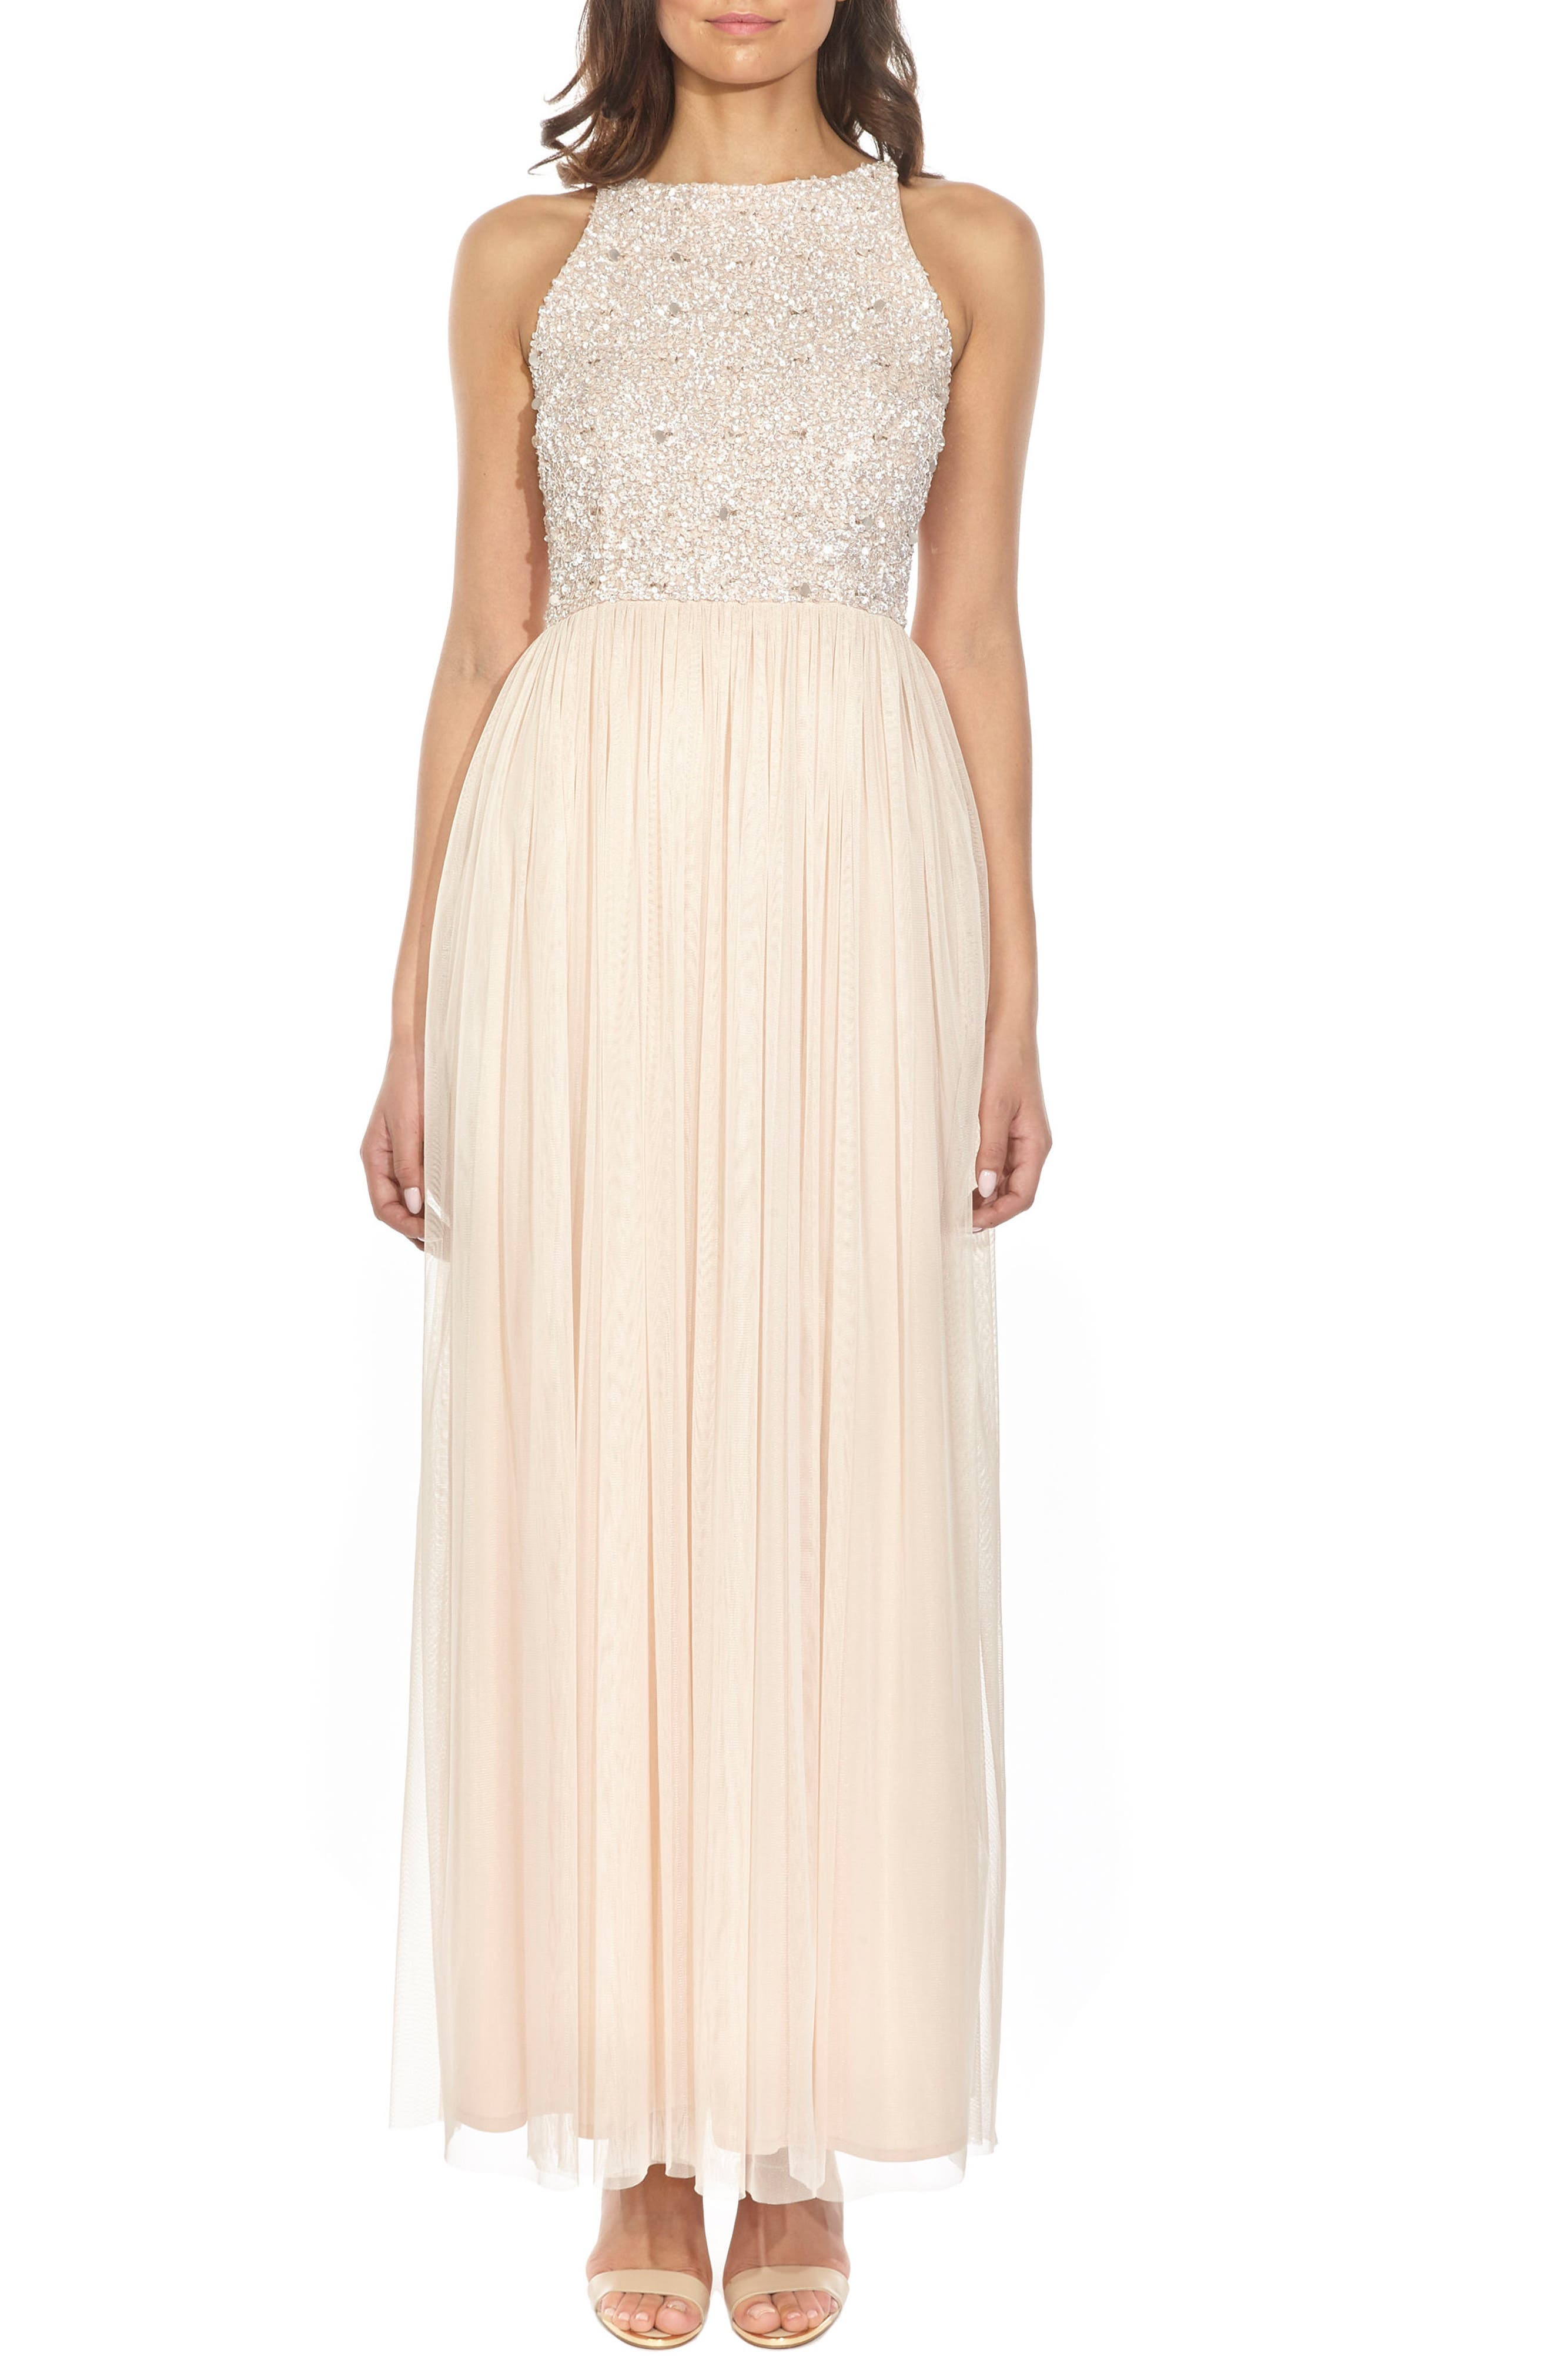 Picasso Embellished Bodice Maxi Dress,                         Main,                         color, 250